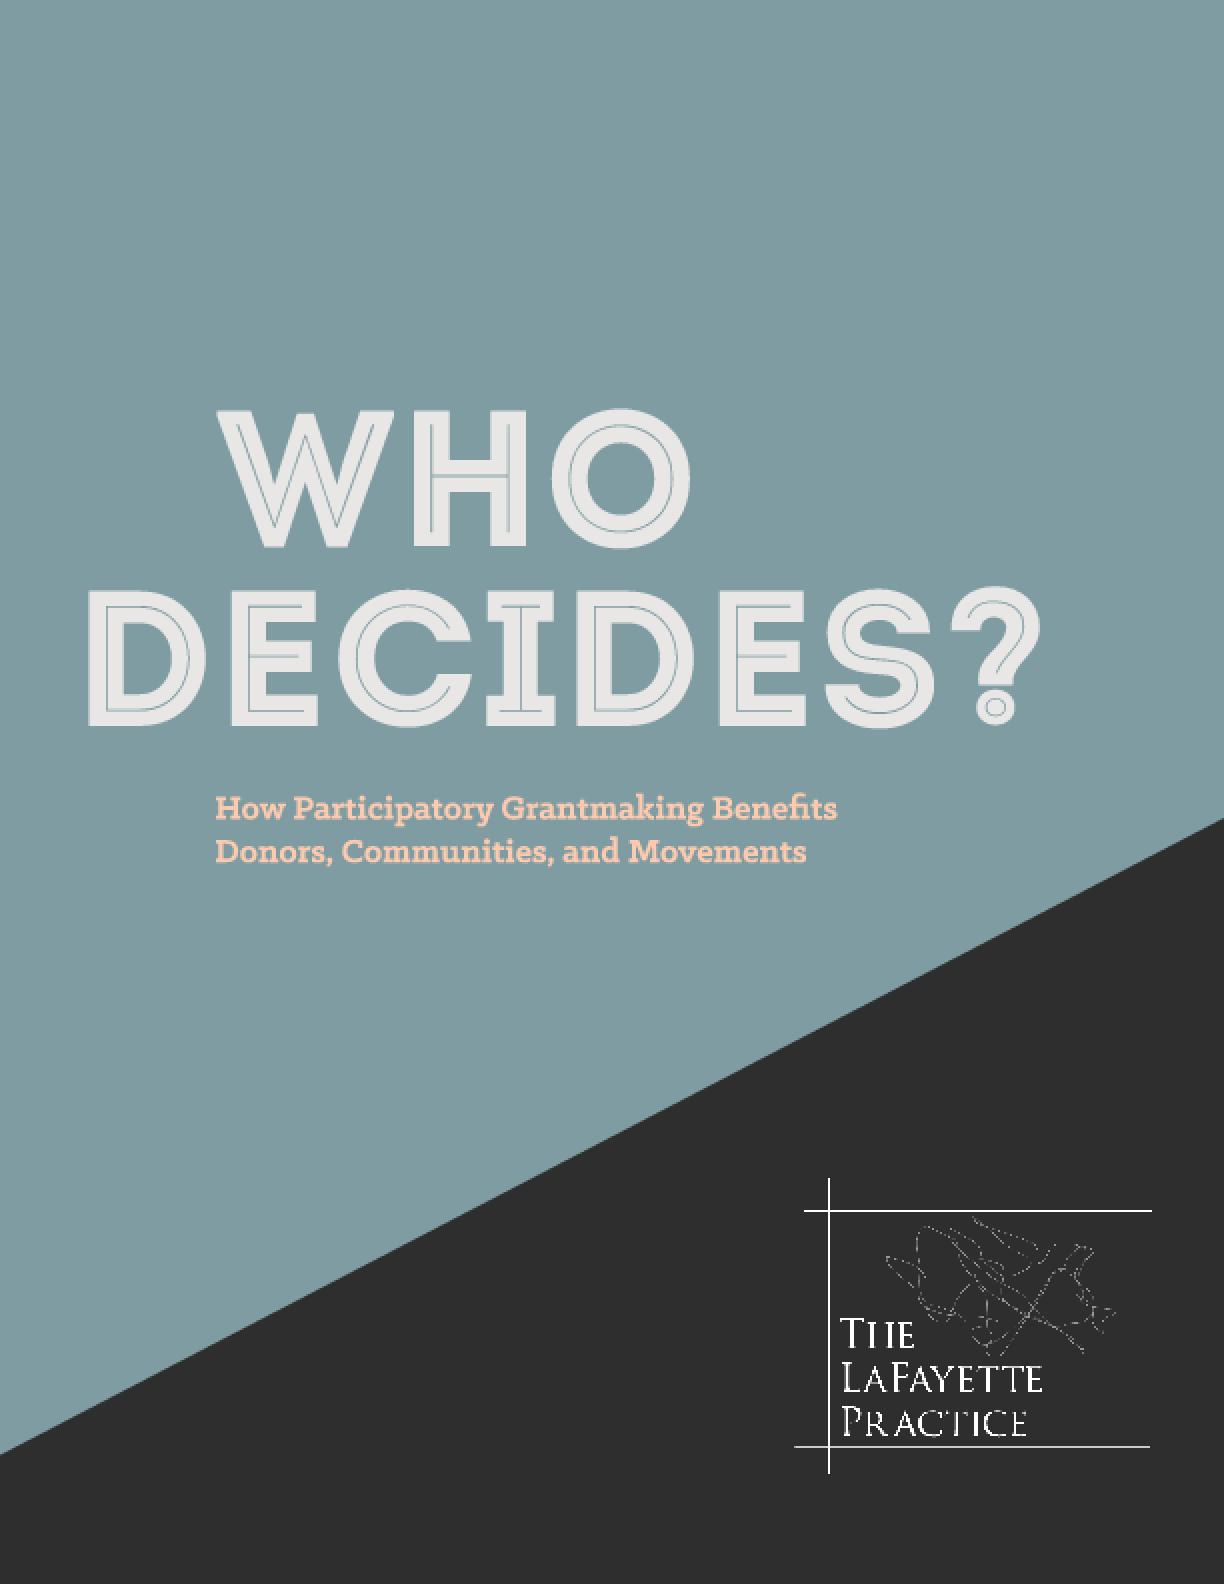 Who Decides: How Participatory Grantmaking Benefits Donors, Communities, and Movements